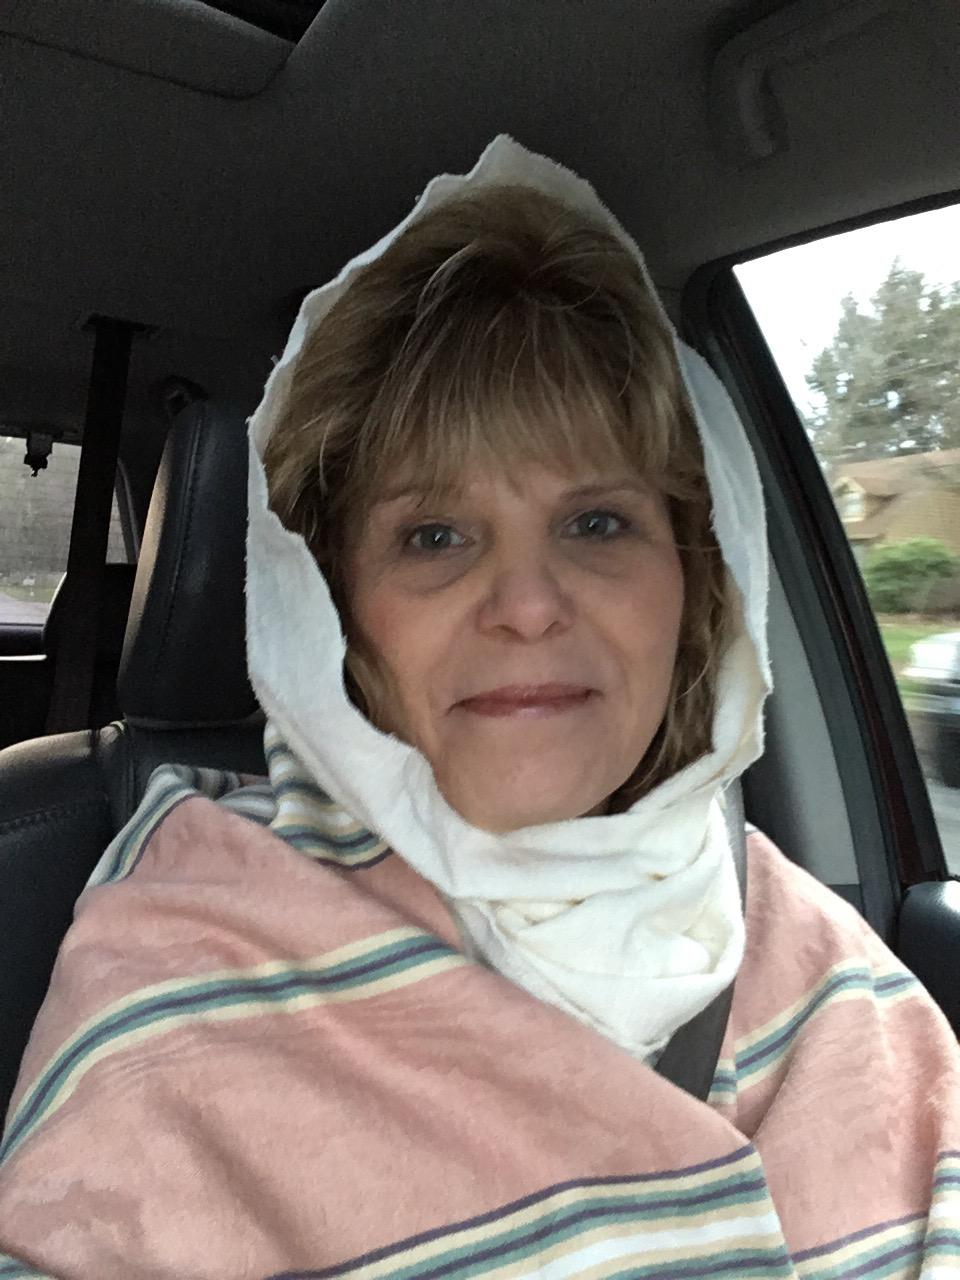 Betty McMurry - is joyfully the wife of one husband, mother to 2 children and grandmother to a precious little girl, Leavitt, who is 5 months old and to a grandson due to be born April 1.